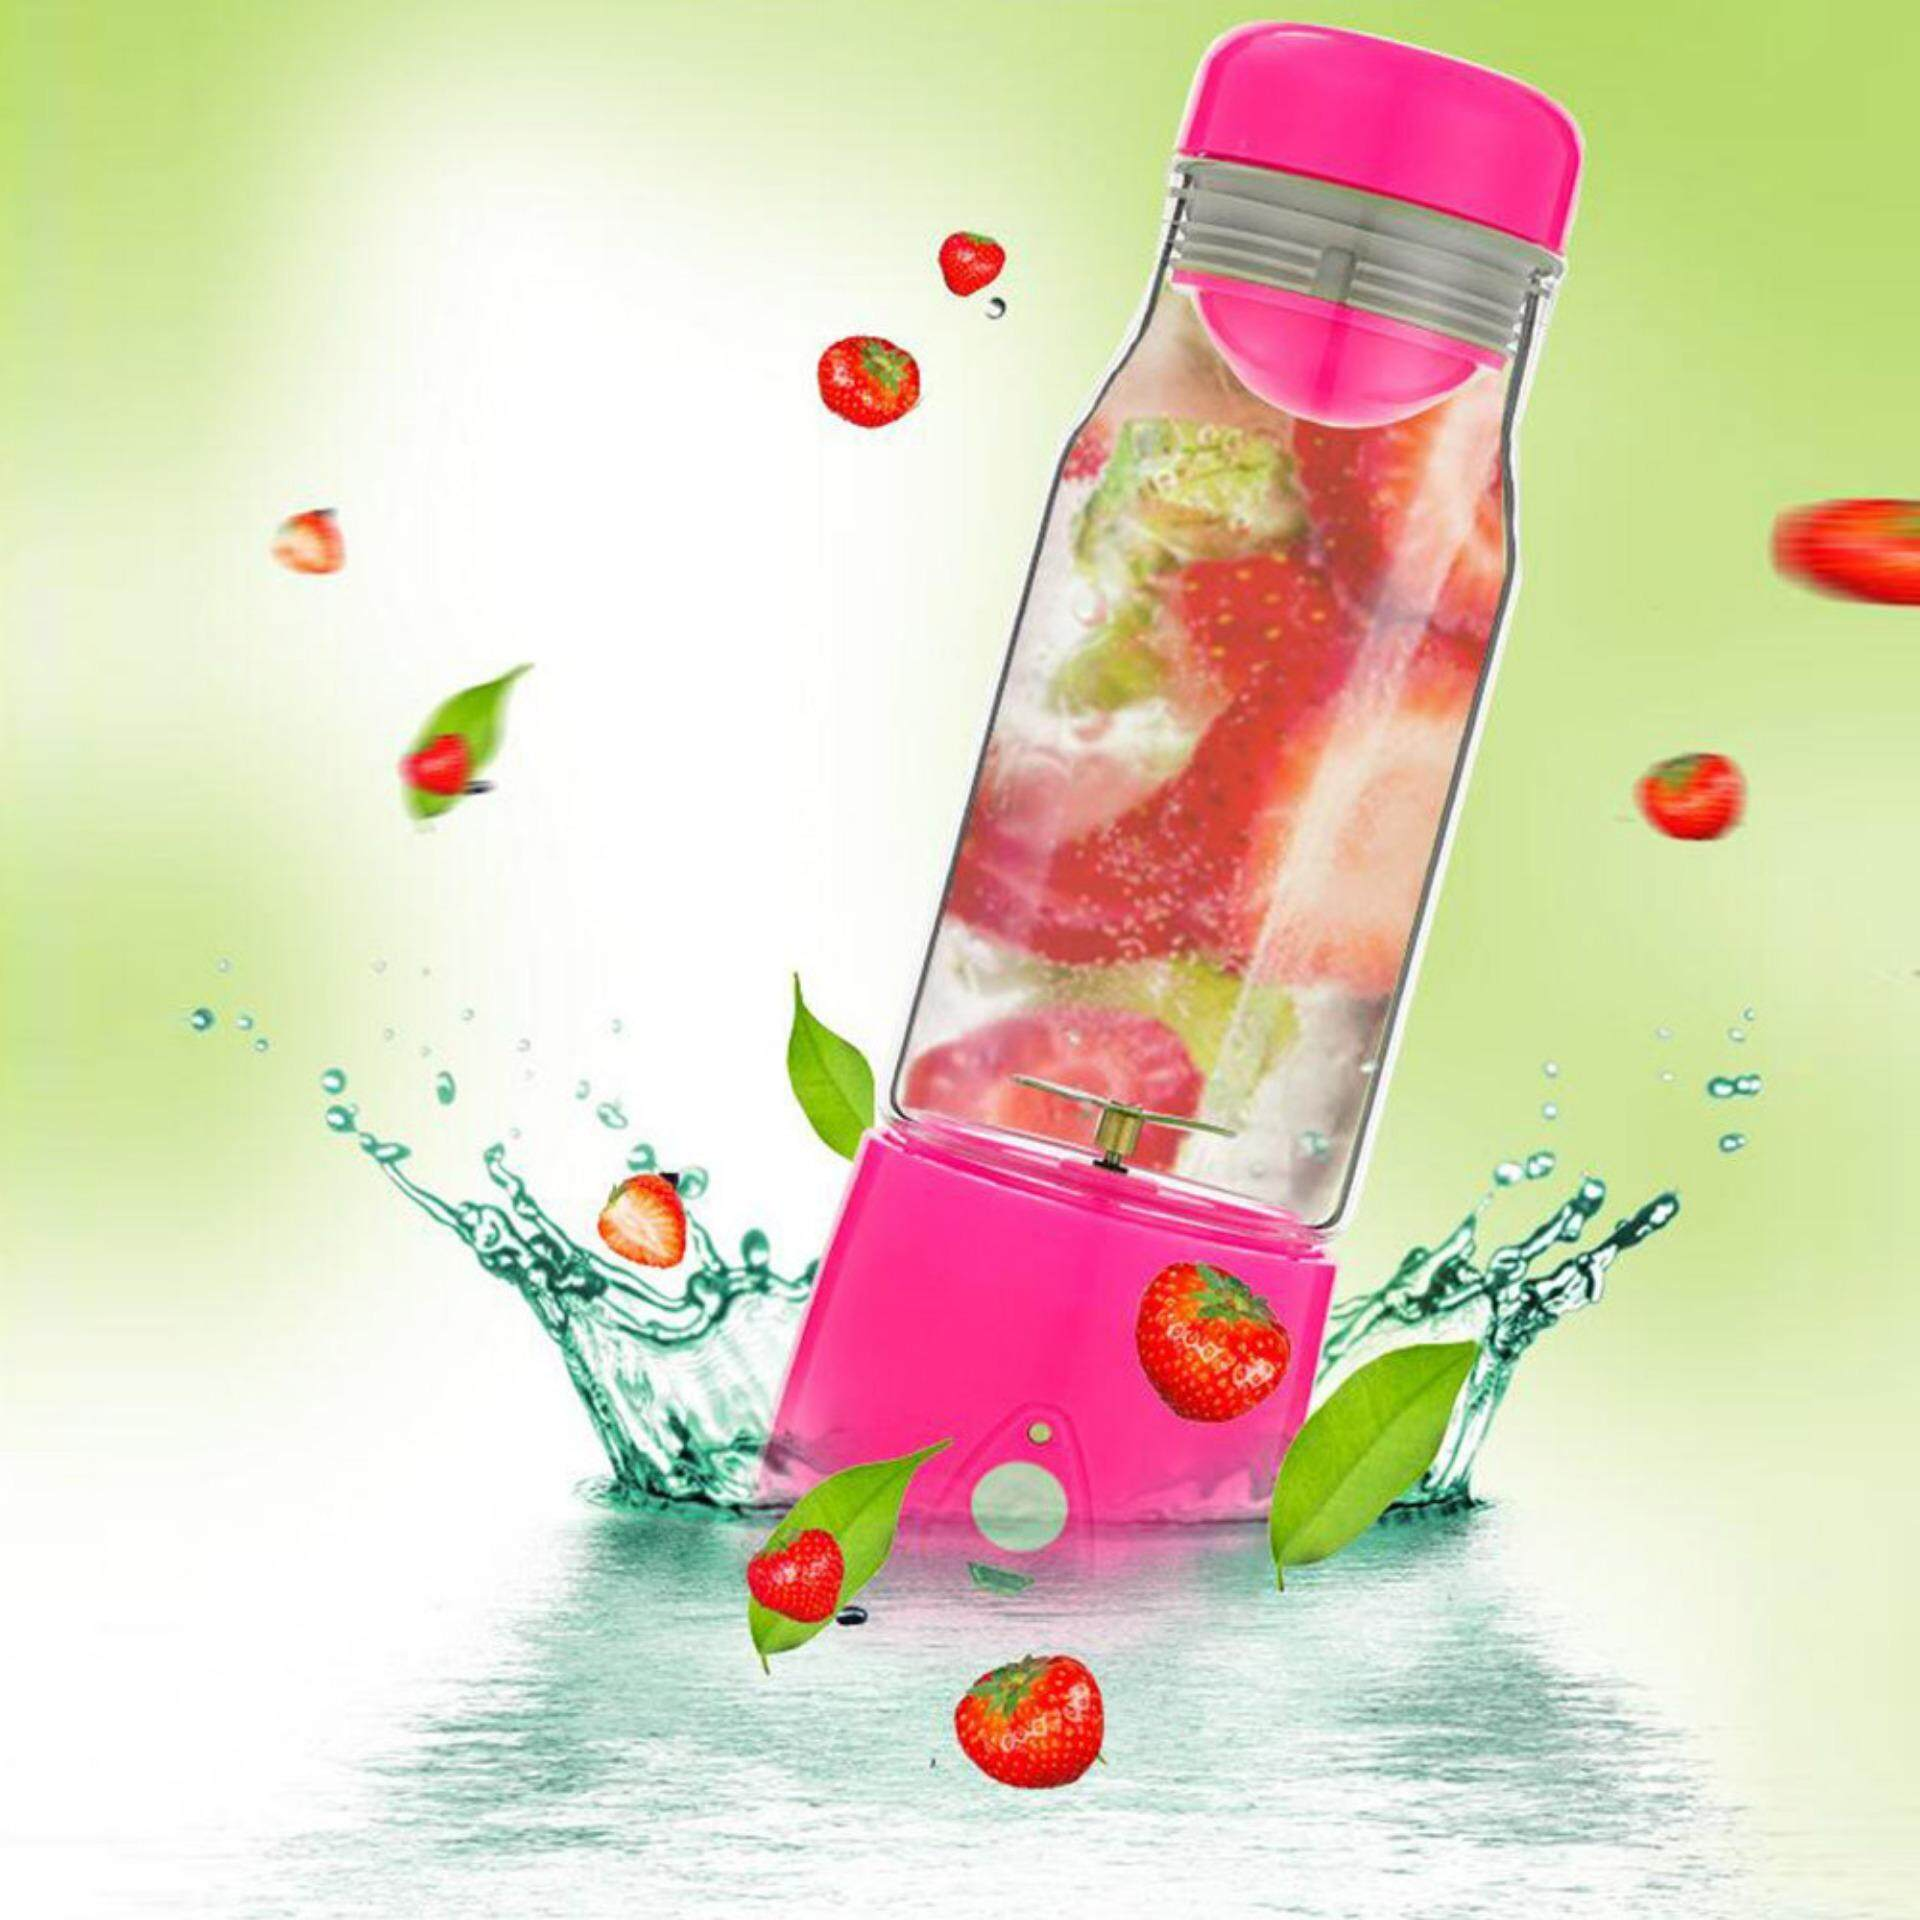 Mini Portable Rechargeable USB electric fruit juicer/smoothie maker - Pink